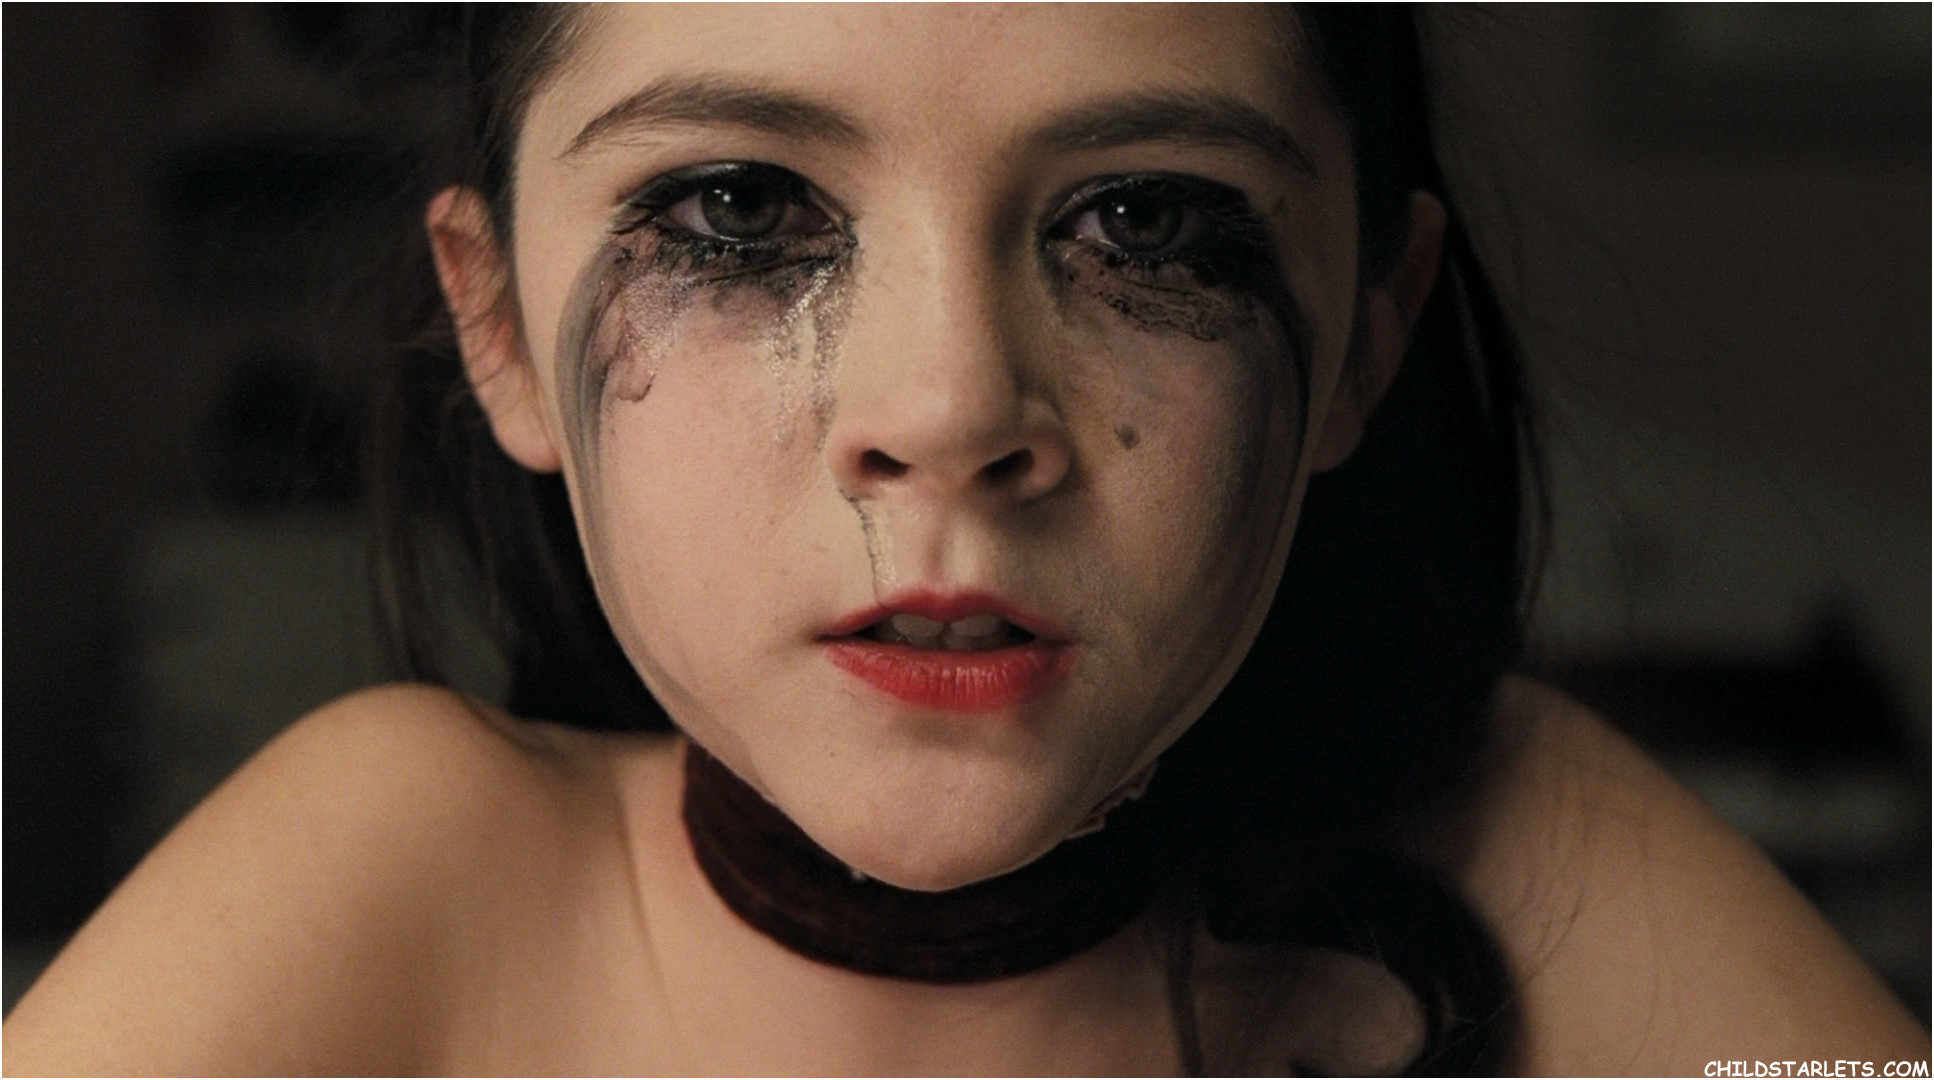 2. Esther in Orphan (2009)